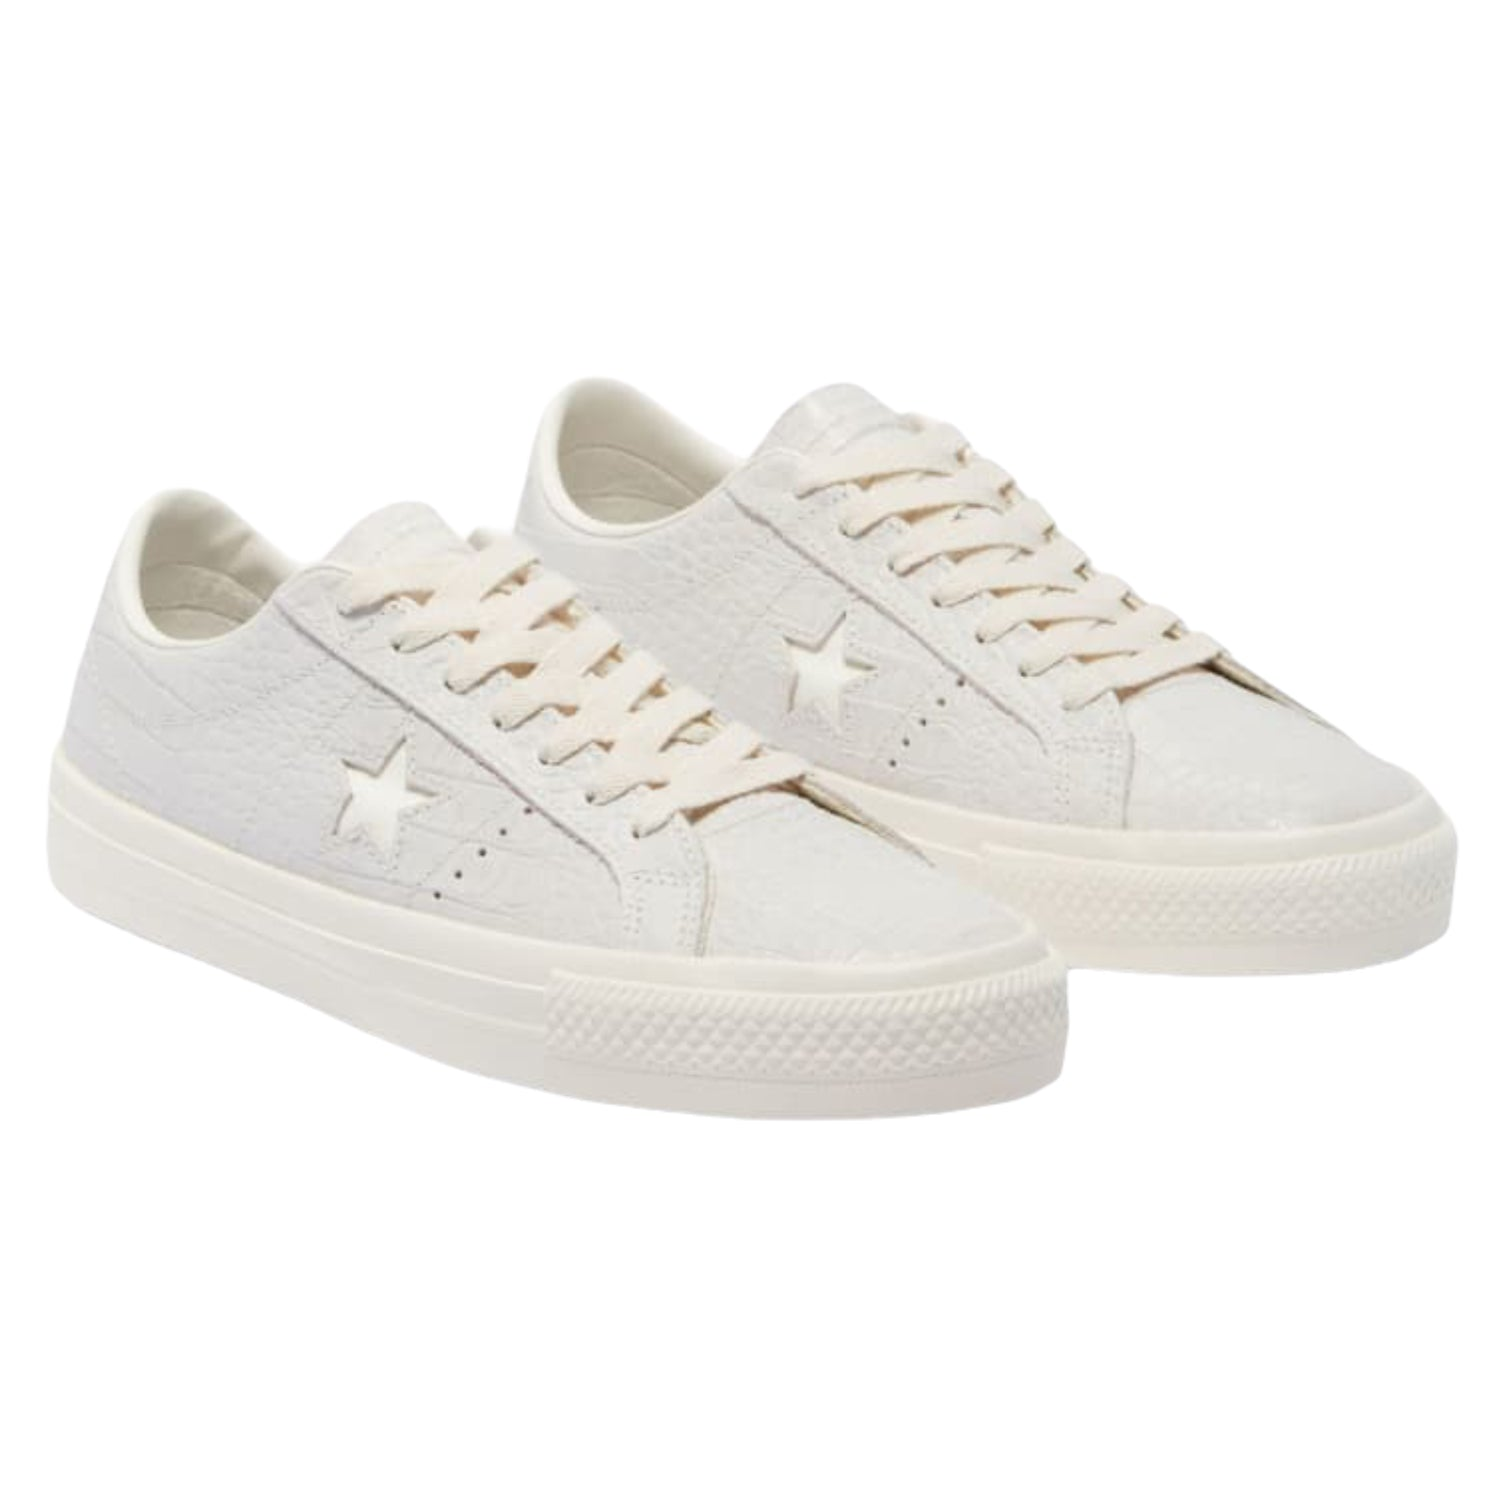 Converse CONS One Star Pro Egret/Egret/Gum Honey